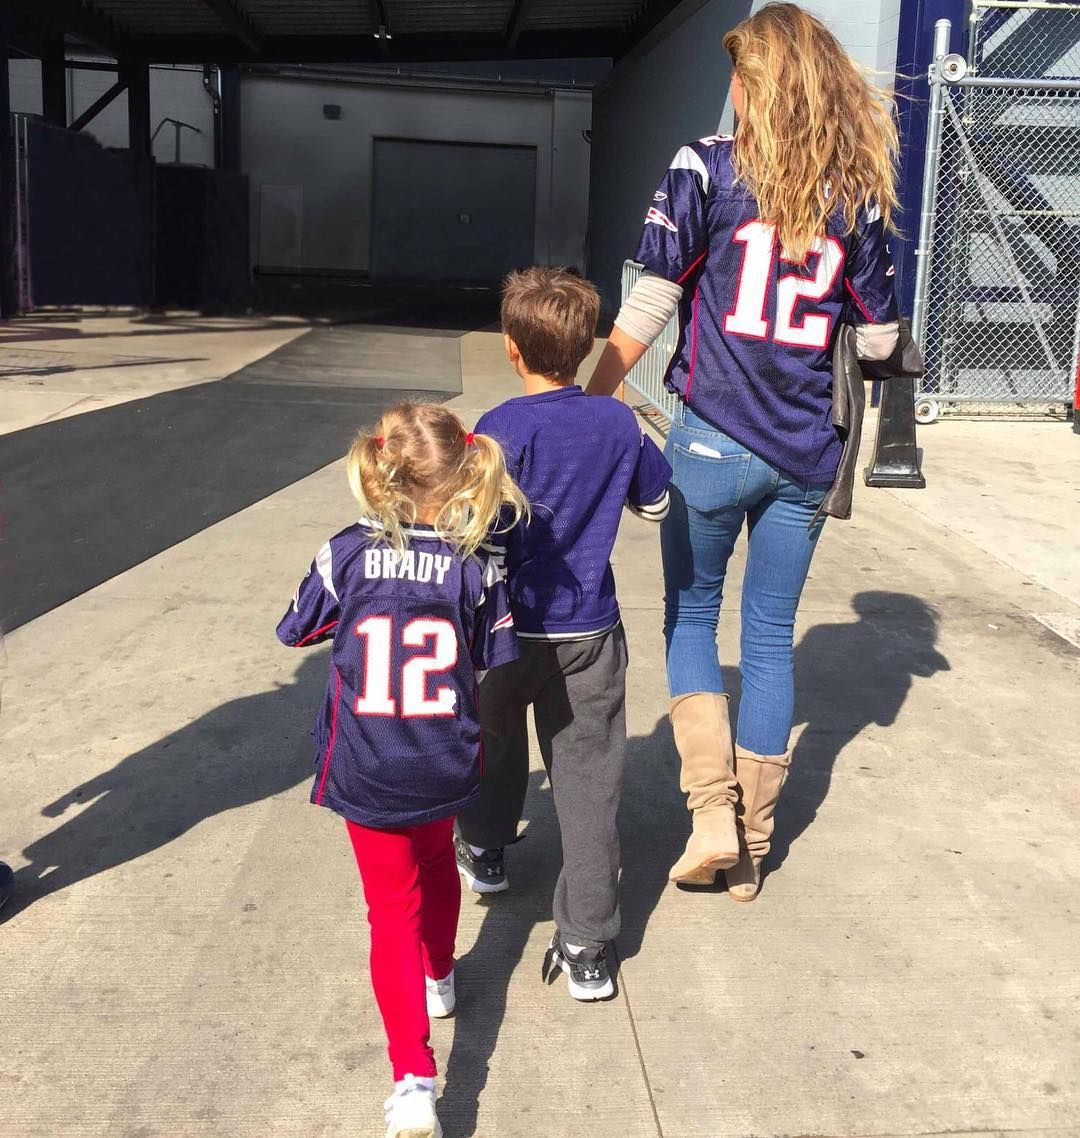 5 Game Day Outfits Inspired By Gisele Bundchen Gameday Outfit Football Game Outfit Football Jersey Outfit